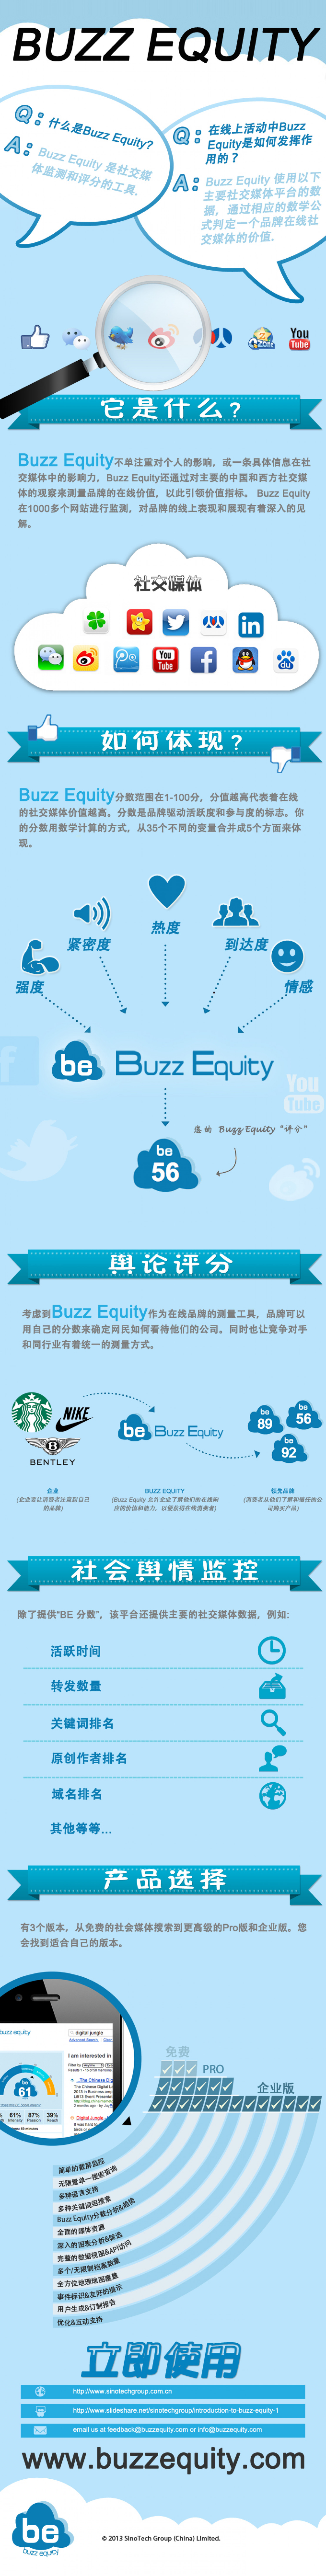 Buzz Equity - Chinese Infographic